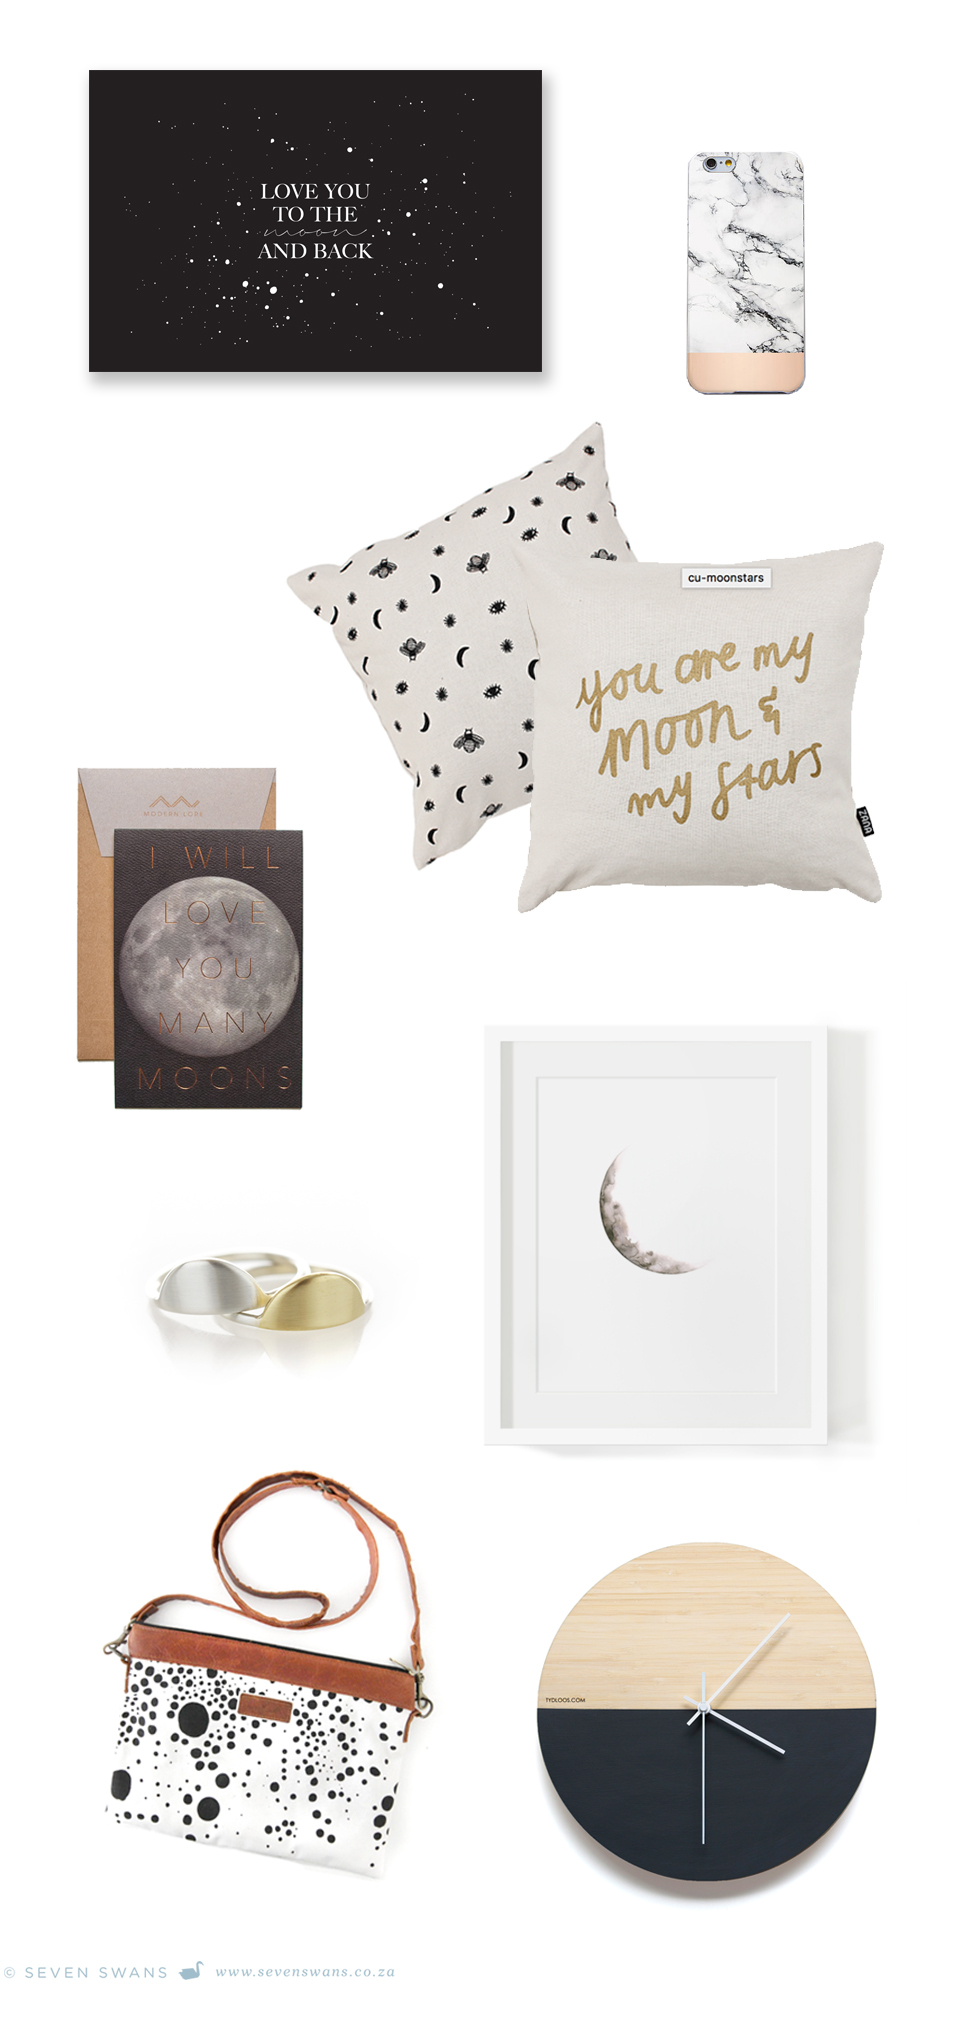 Seven Swans_gift guide for the starry eyed